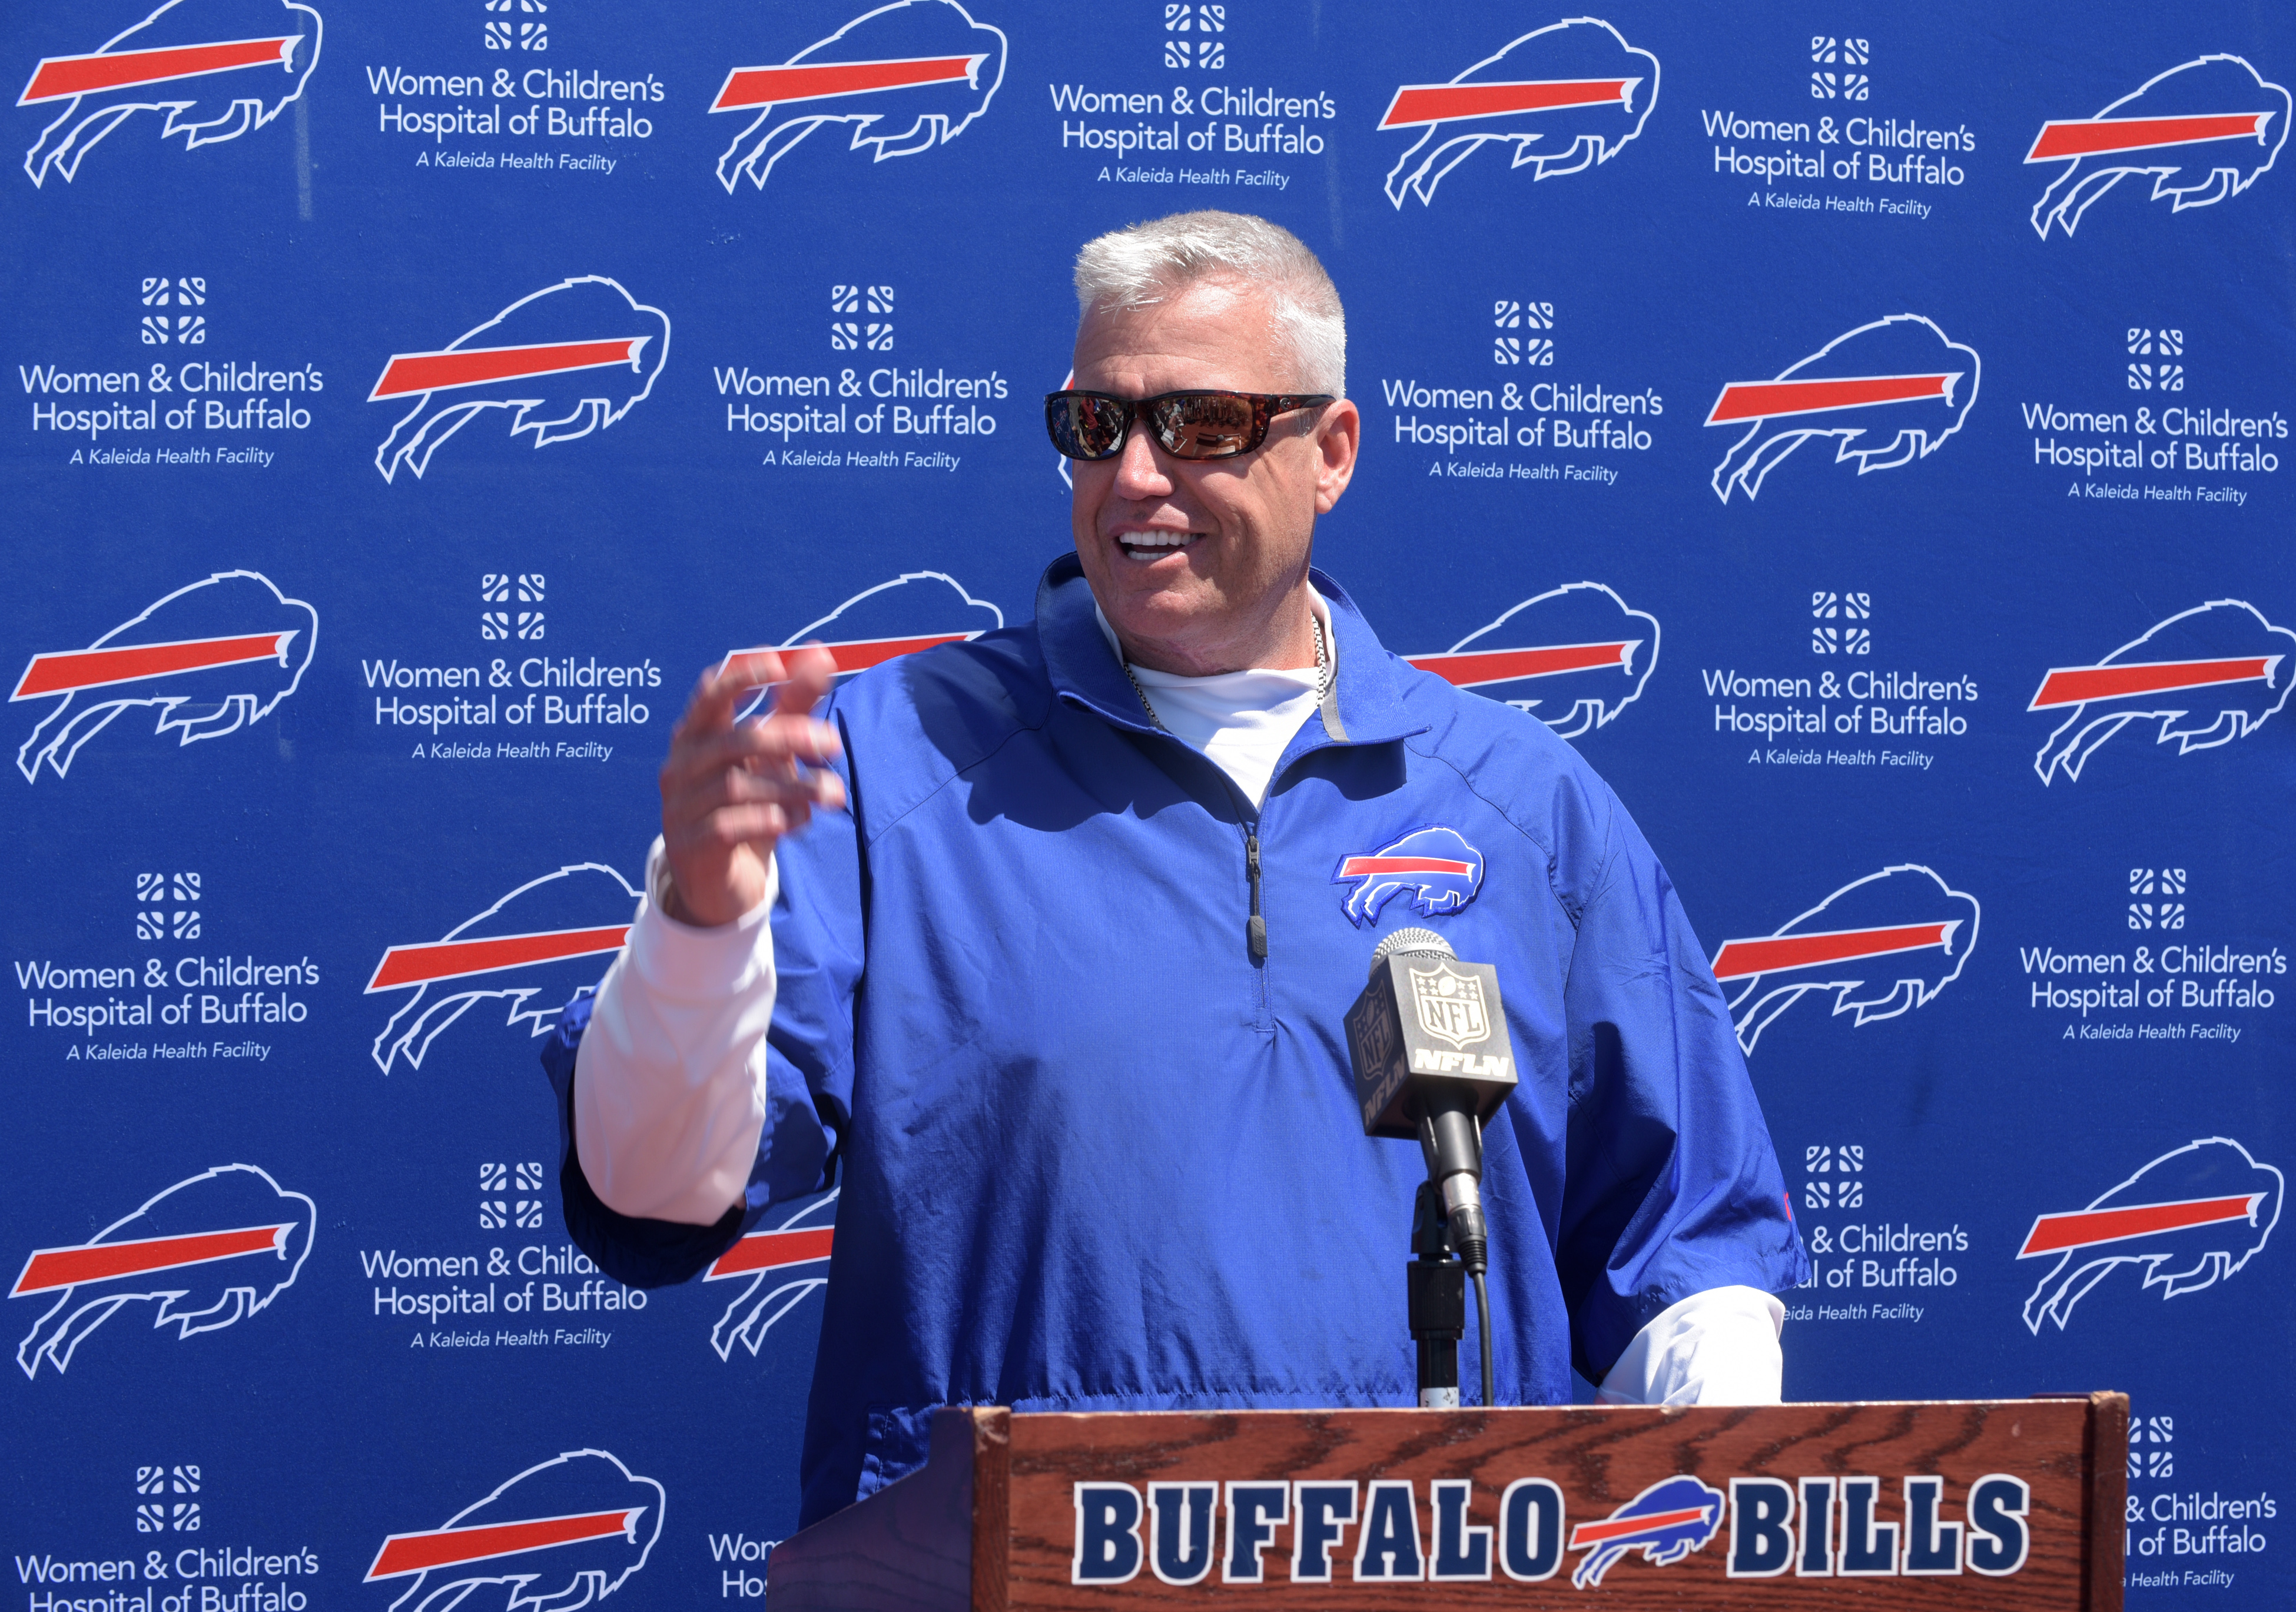 Buffalo Bills head coach Rex Ryan speaks during an NFL football press conference Wednesay, June 3, 2015, in Orchard Park, N.Y. (AP Photo/Gary Wiepert)